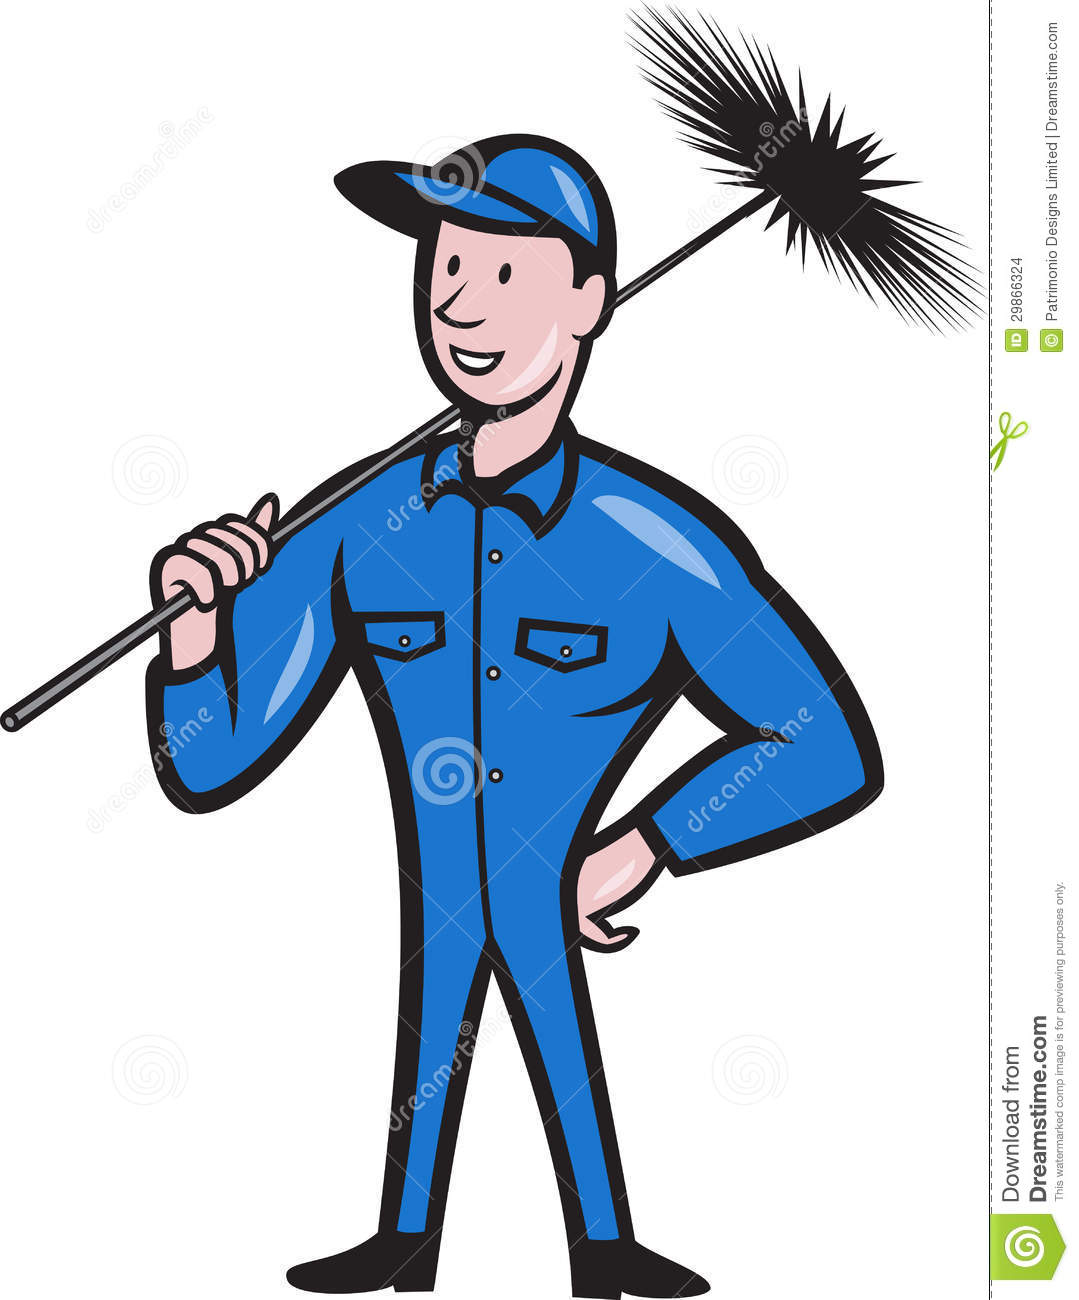 Chimney Sweeper Cleaner Worker Cartoon Stock Images